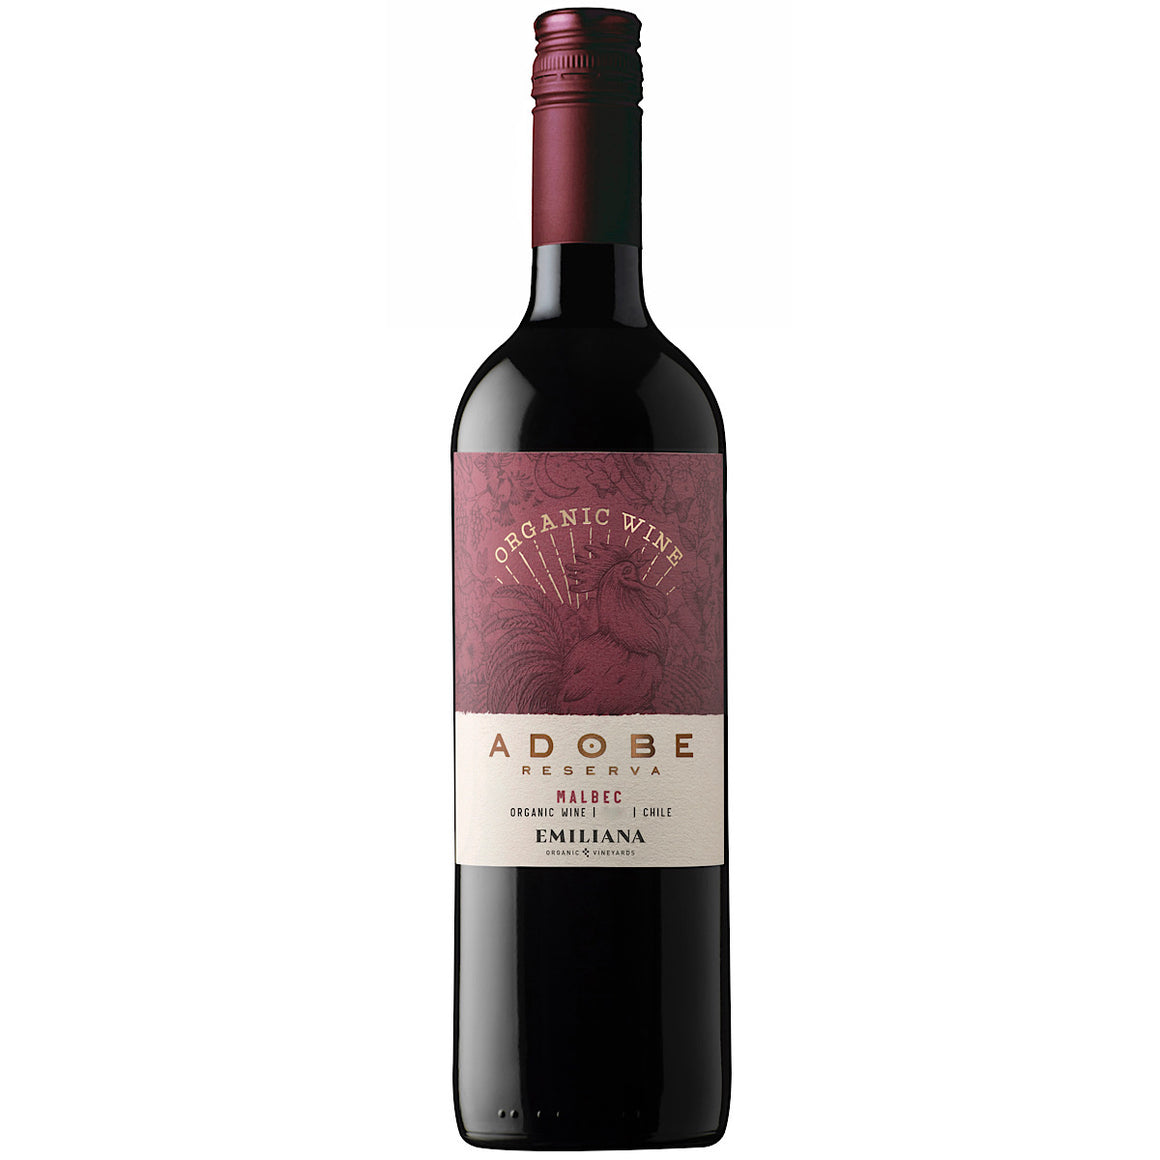 Adobe Reserva Malbec 12 Bottle Case 75cl